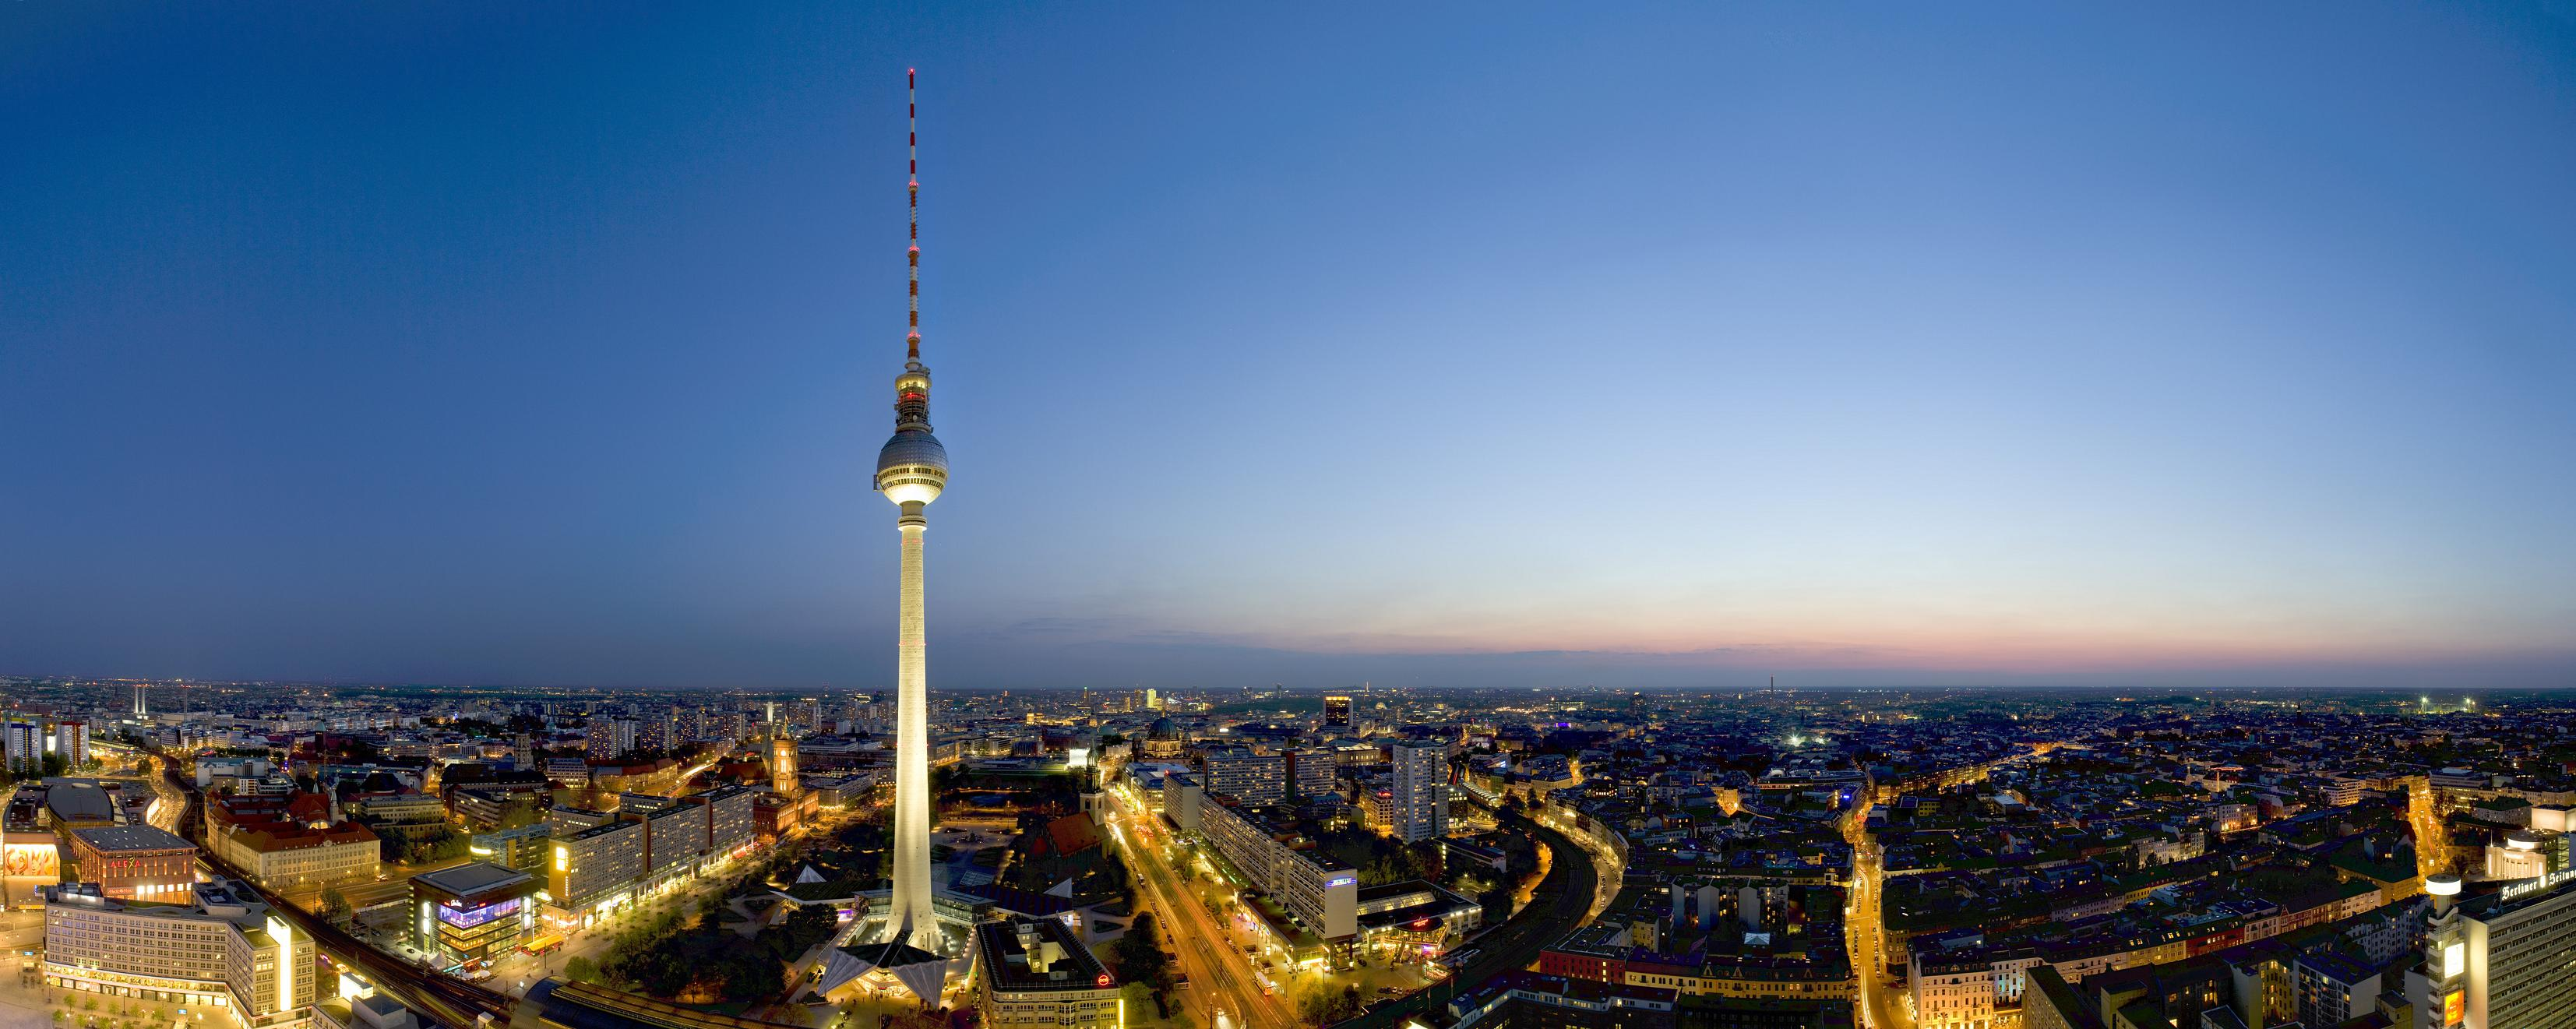 Machine Intelligence Summit to Bring Together AI Experts in Berlin